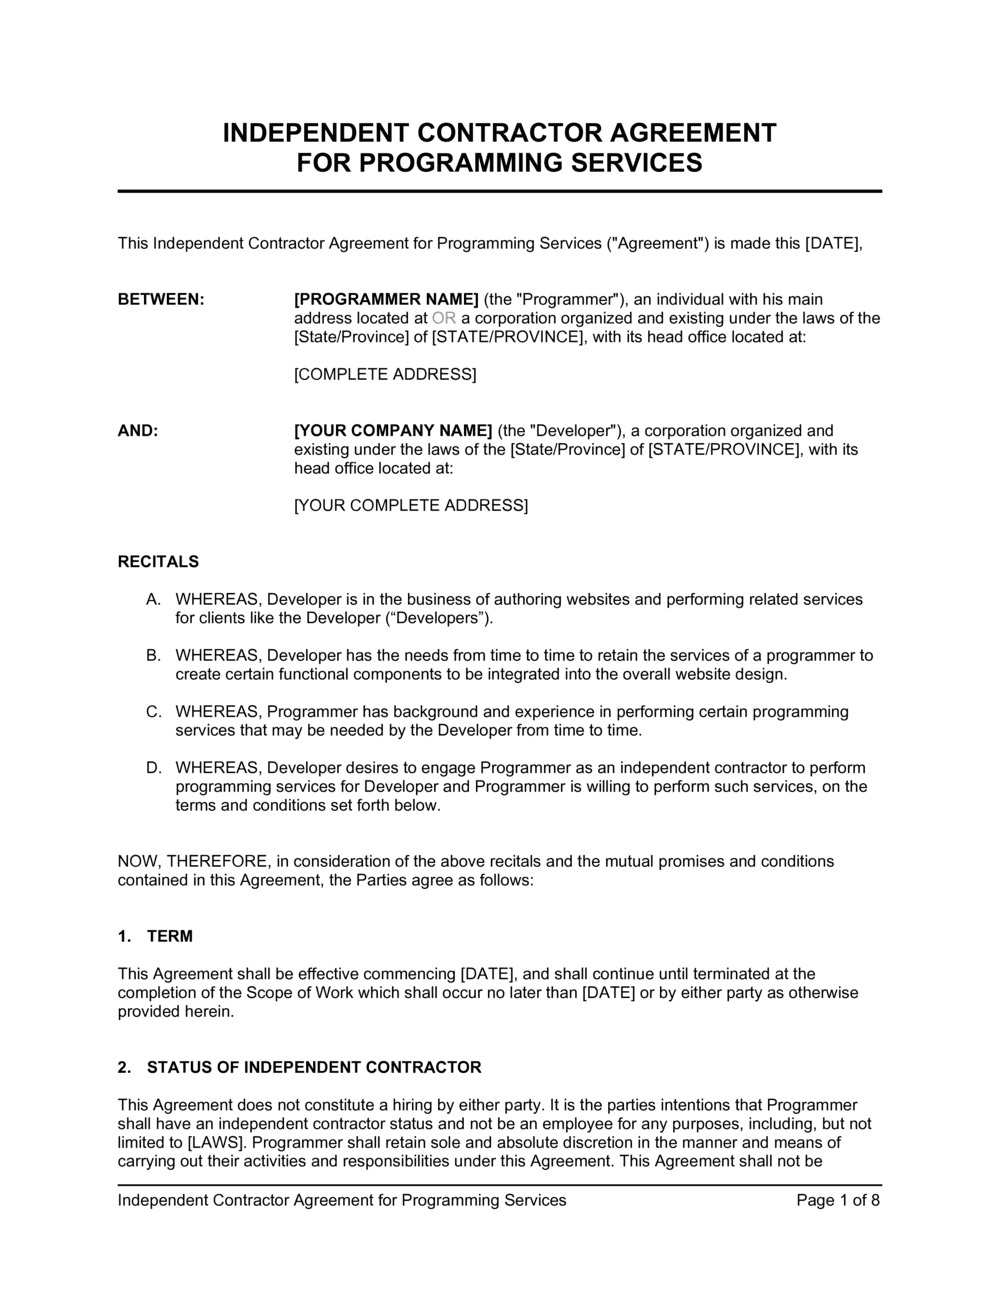 Business-in-a-Box's Independent Contractor Agreement For Programming Services Template